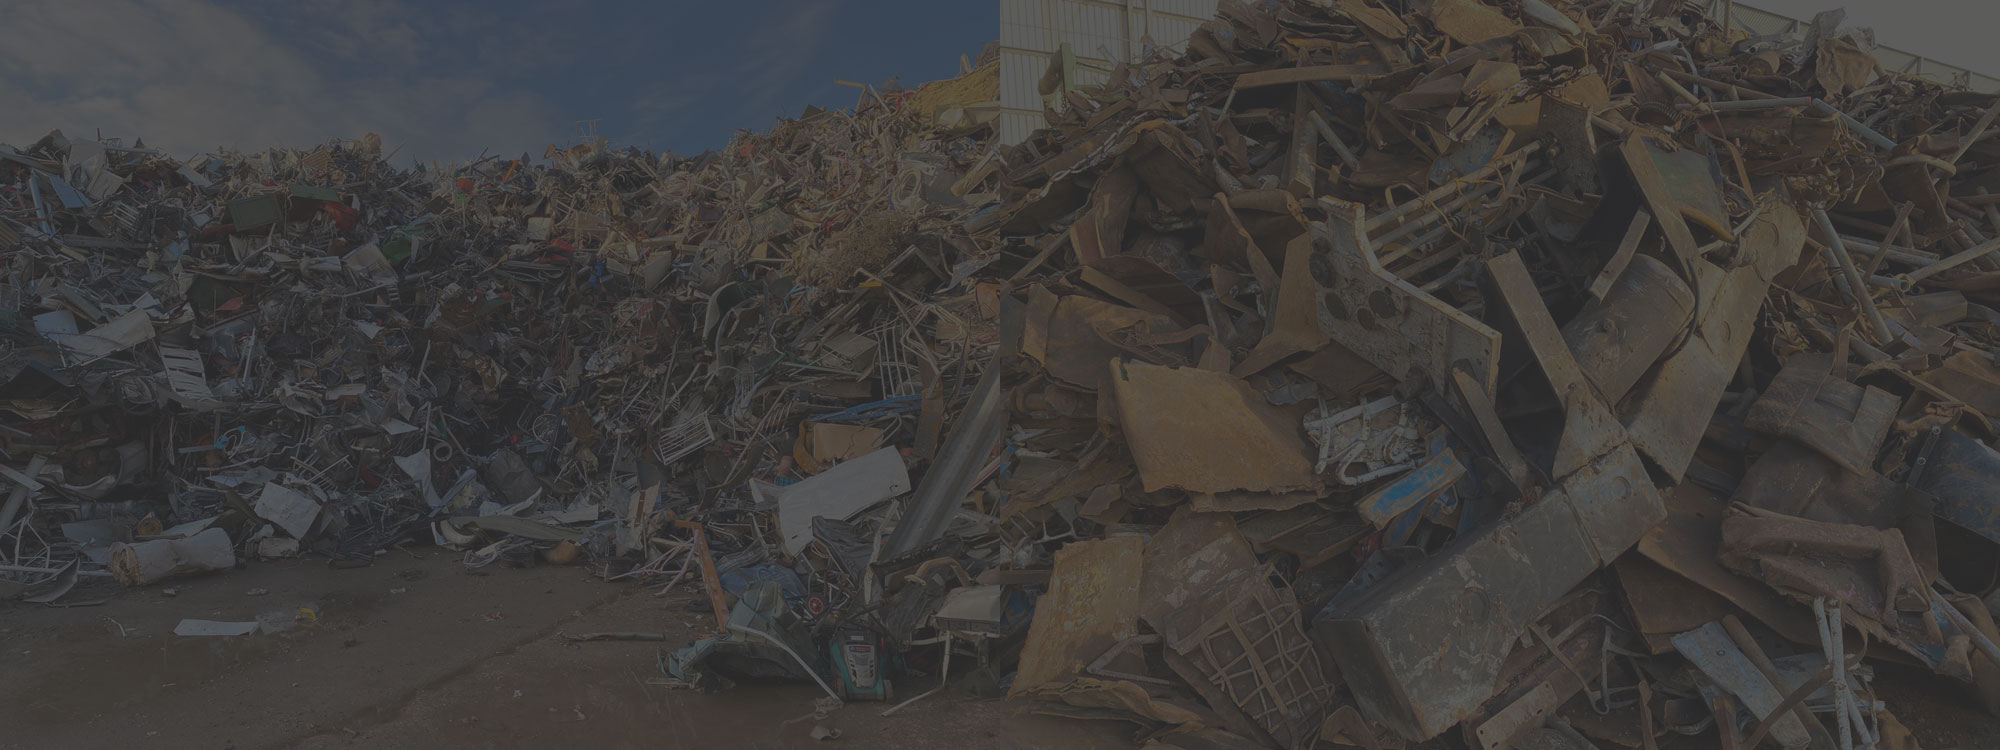 Scrap Metal Recycling for Milton Keynes and surrounding areas